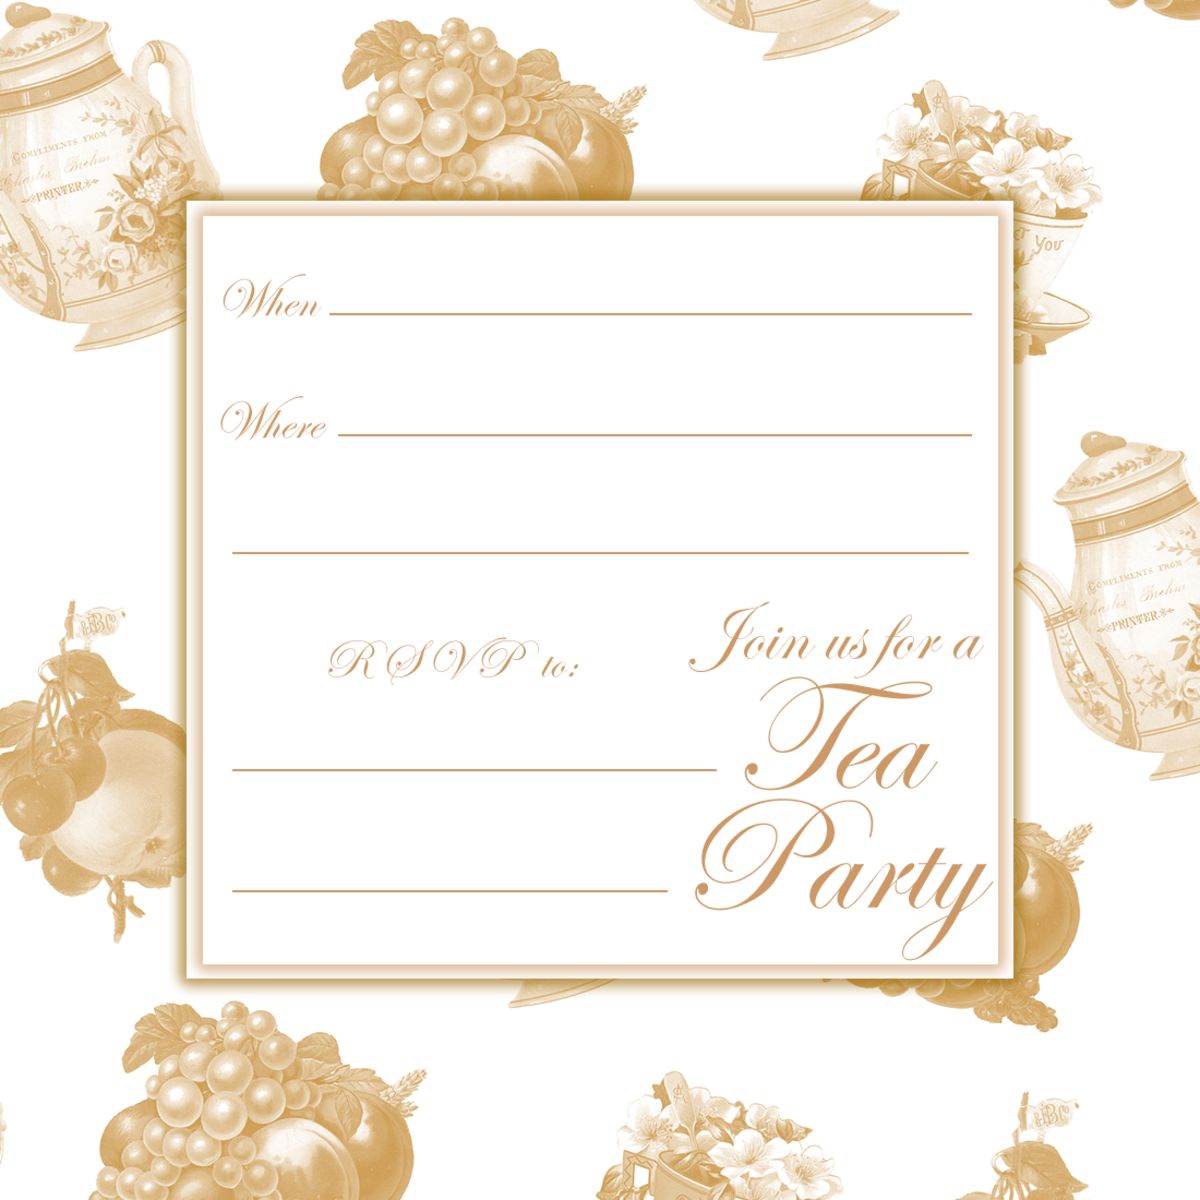 Sample from the Tea Party Invitations hub